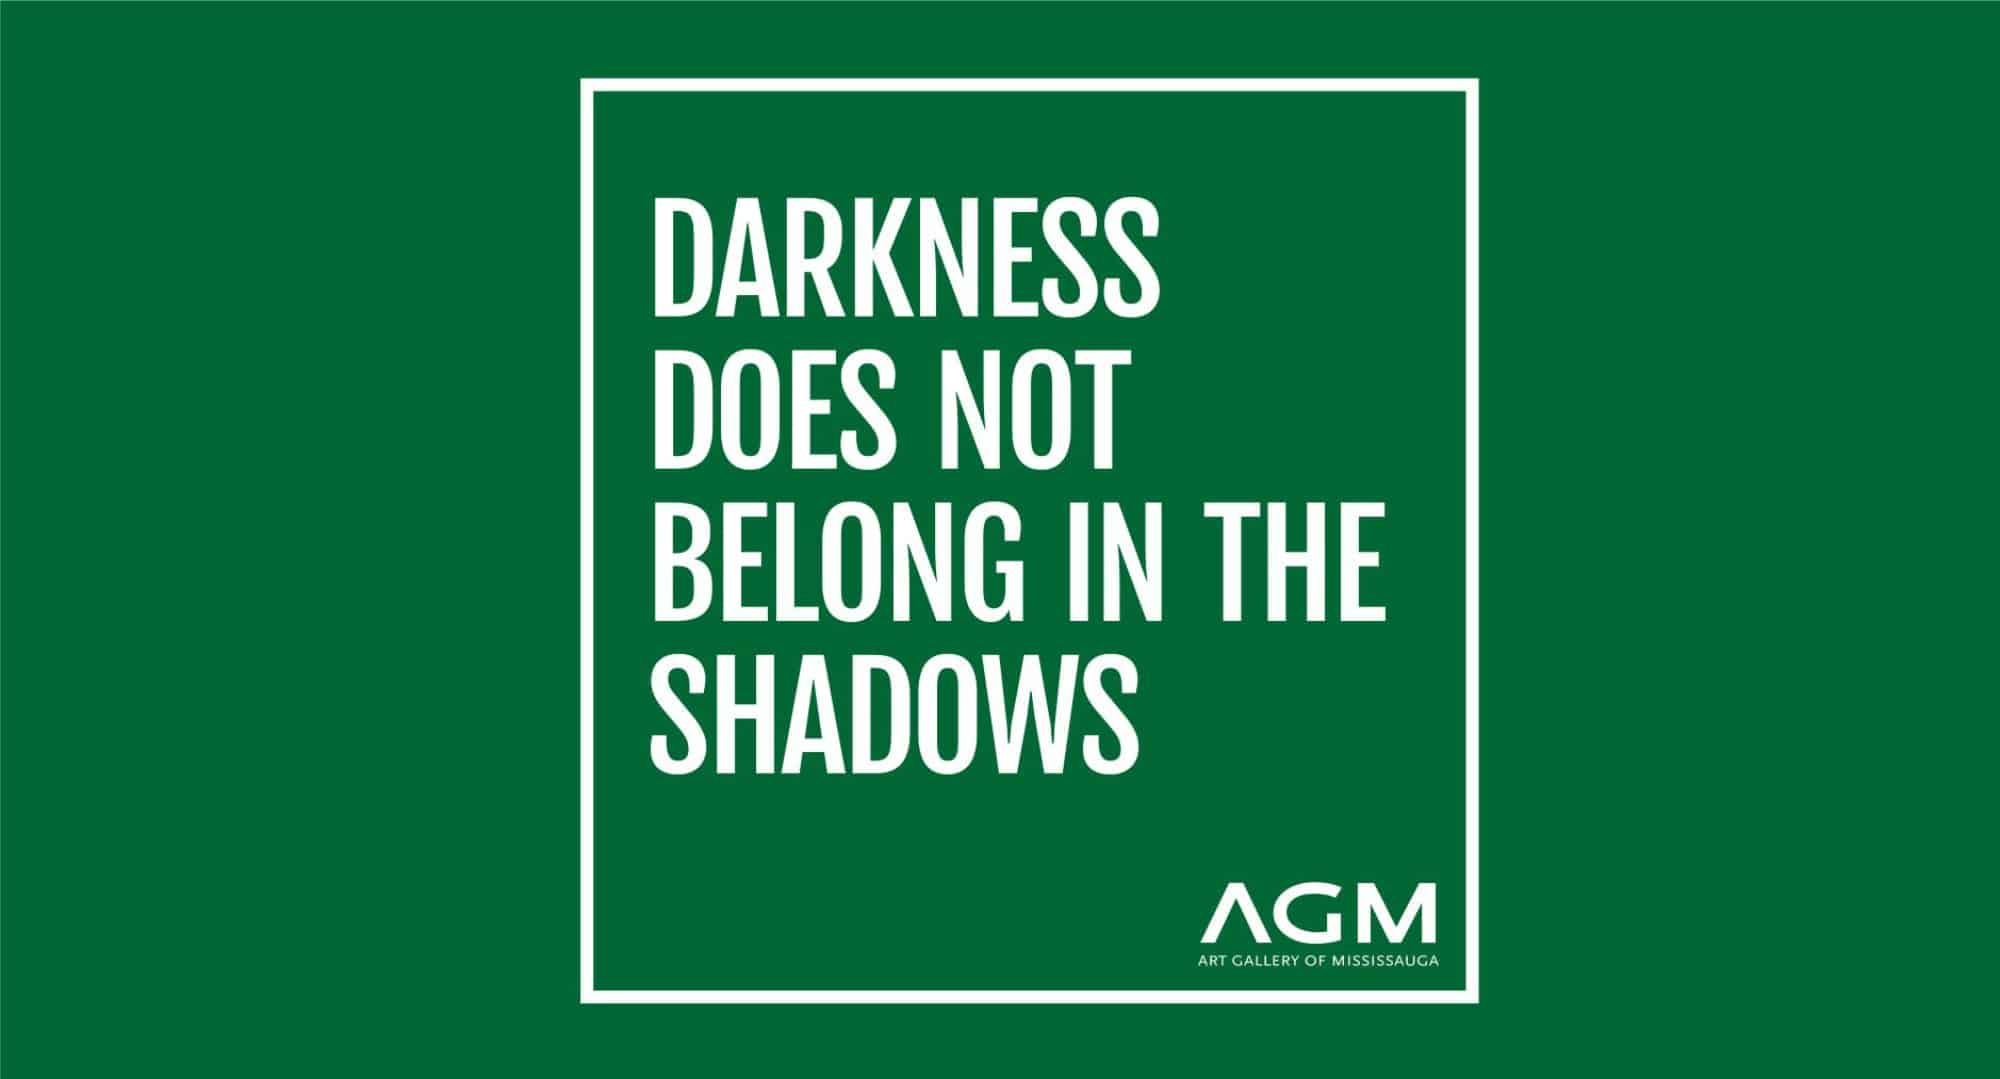 darkness does not belong in the shadows